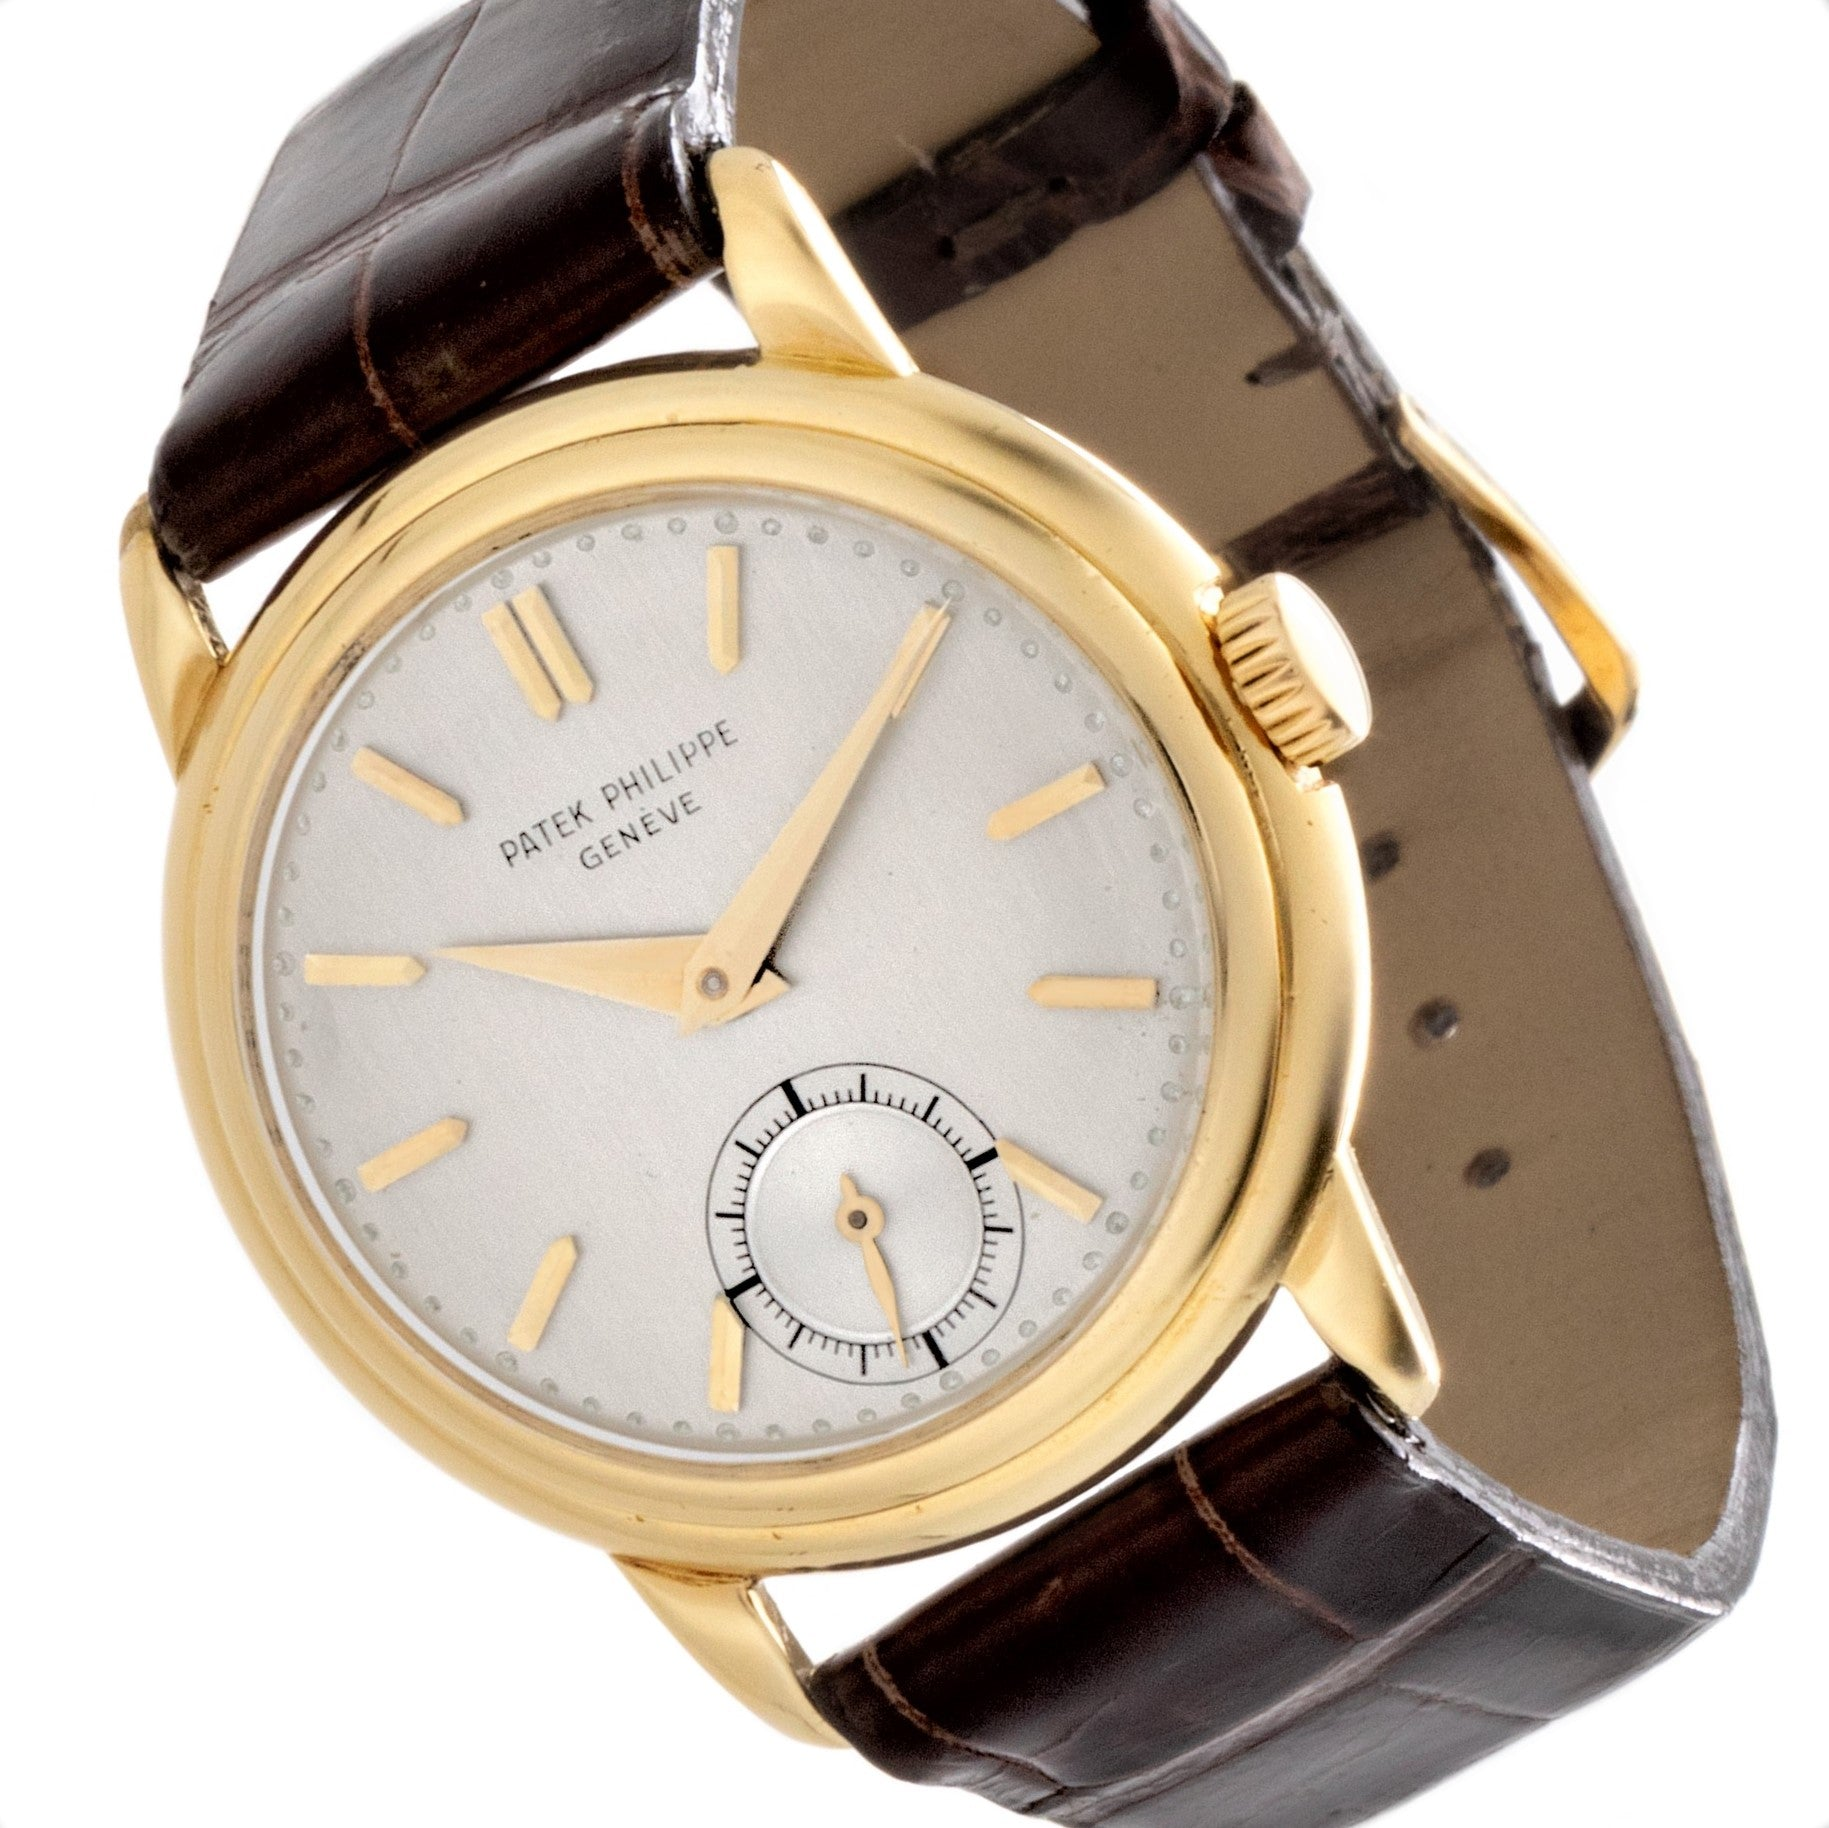 Patek Philippe 592J Calatrava Watch